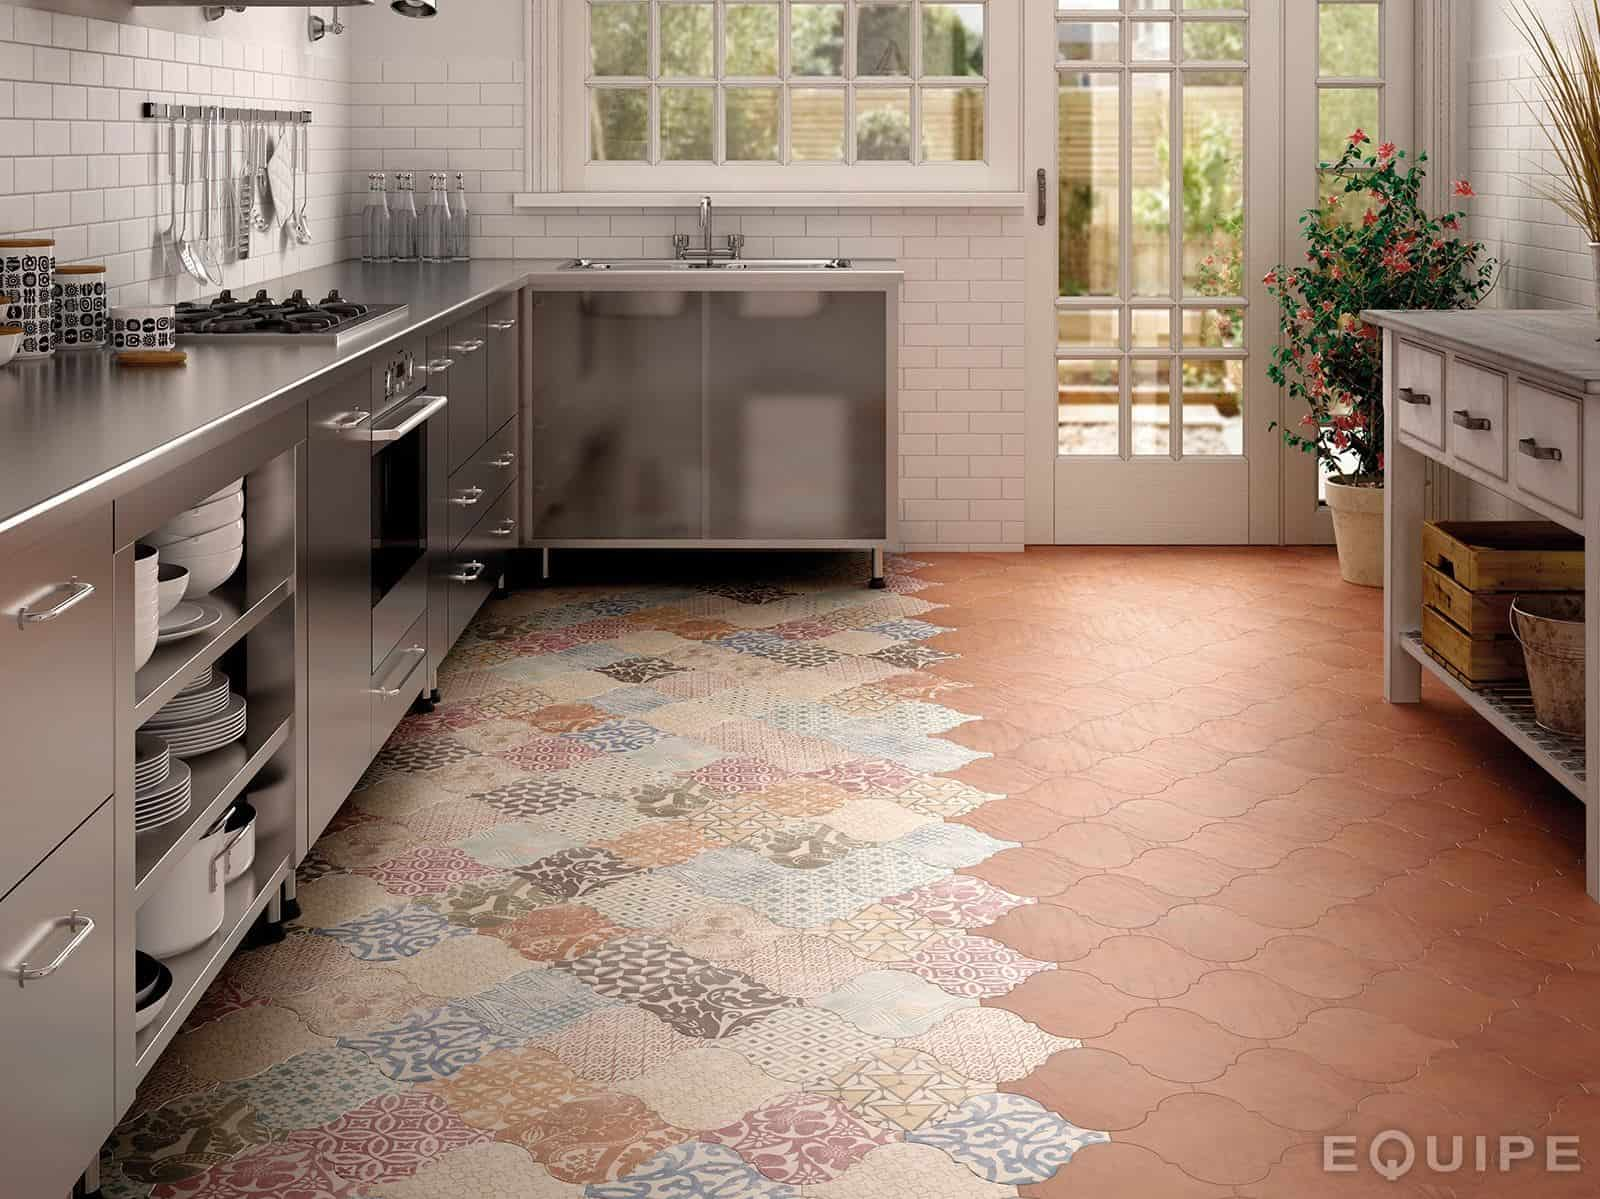 Uncategorized Tiles For The Floor 21 arabesque tile ideas for floor wall and backsplash view in gallery kitchen patchwork equipe 4 jpg